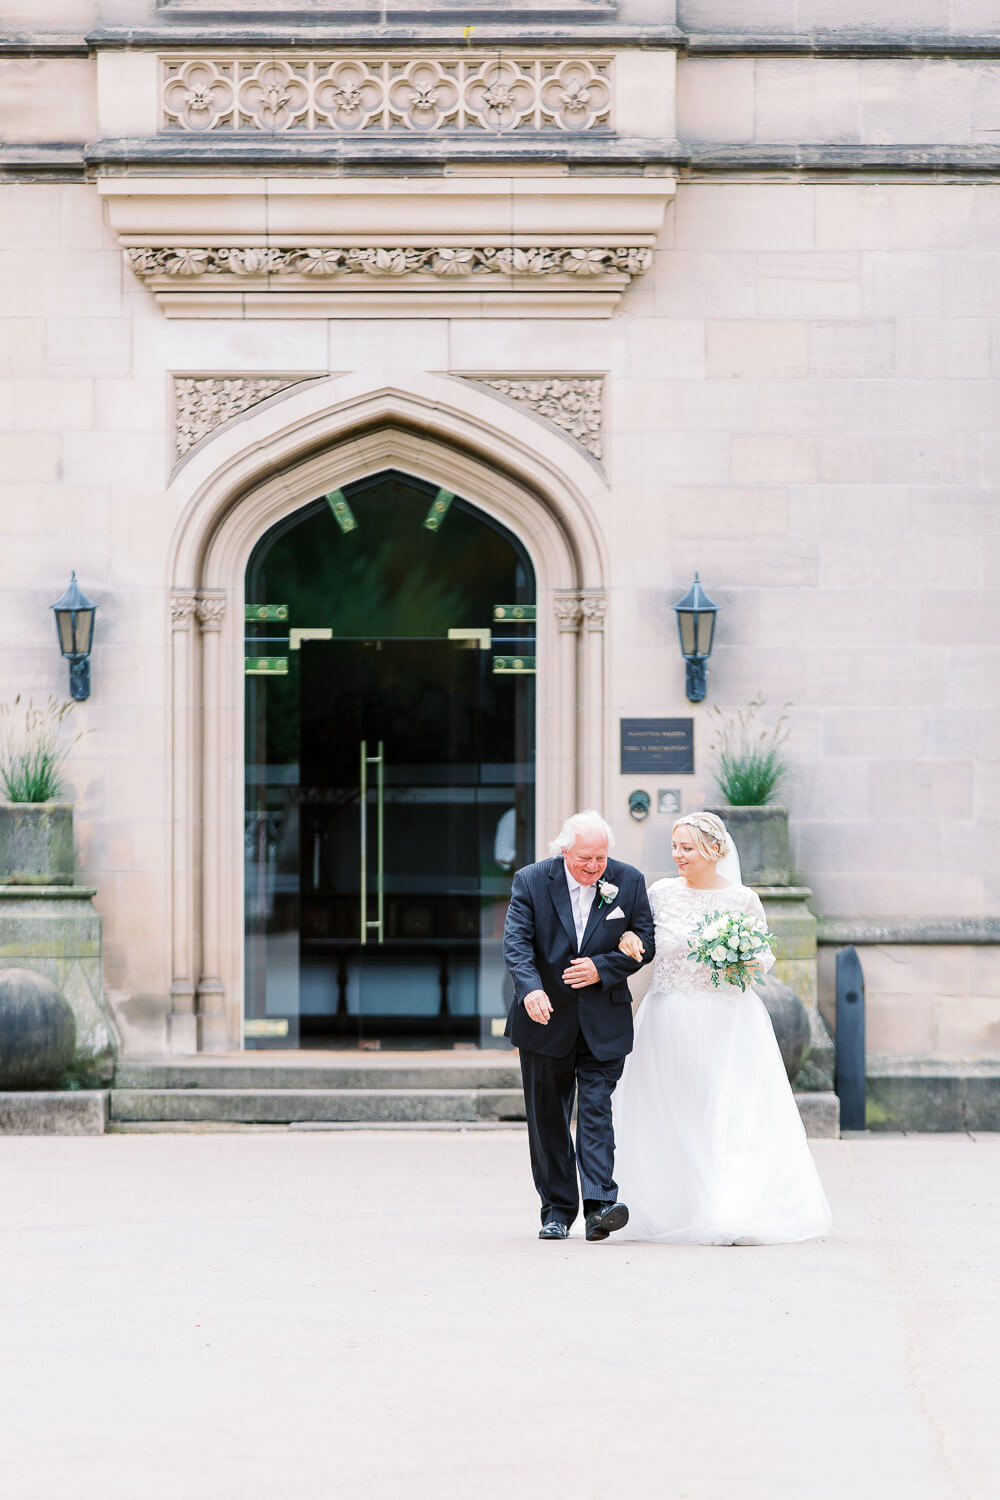 the bride and father walking down to the wedding ceremony at Hampton manor in solihull